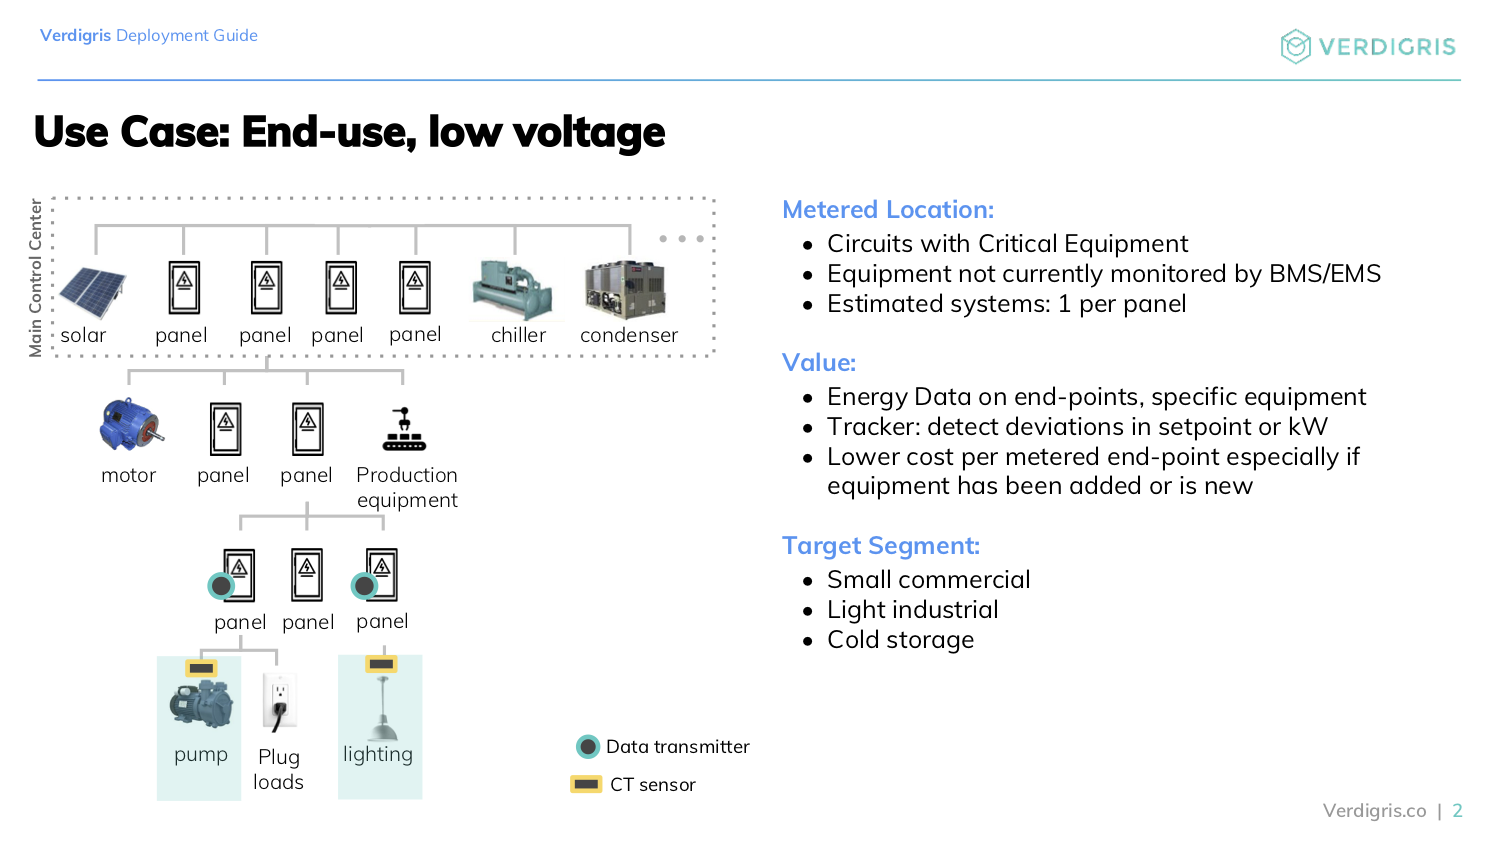 Use Case: end-use, low voltage